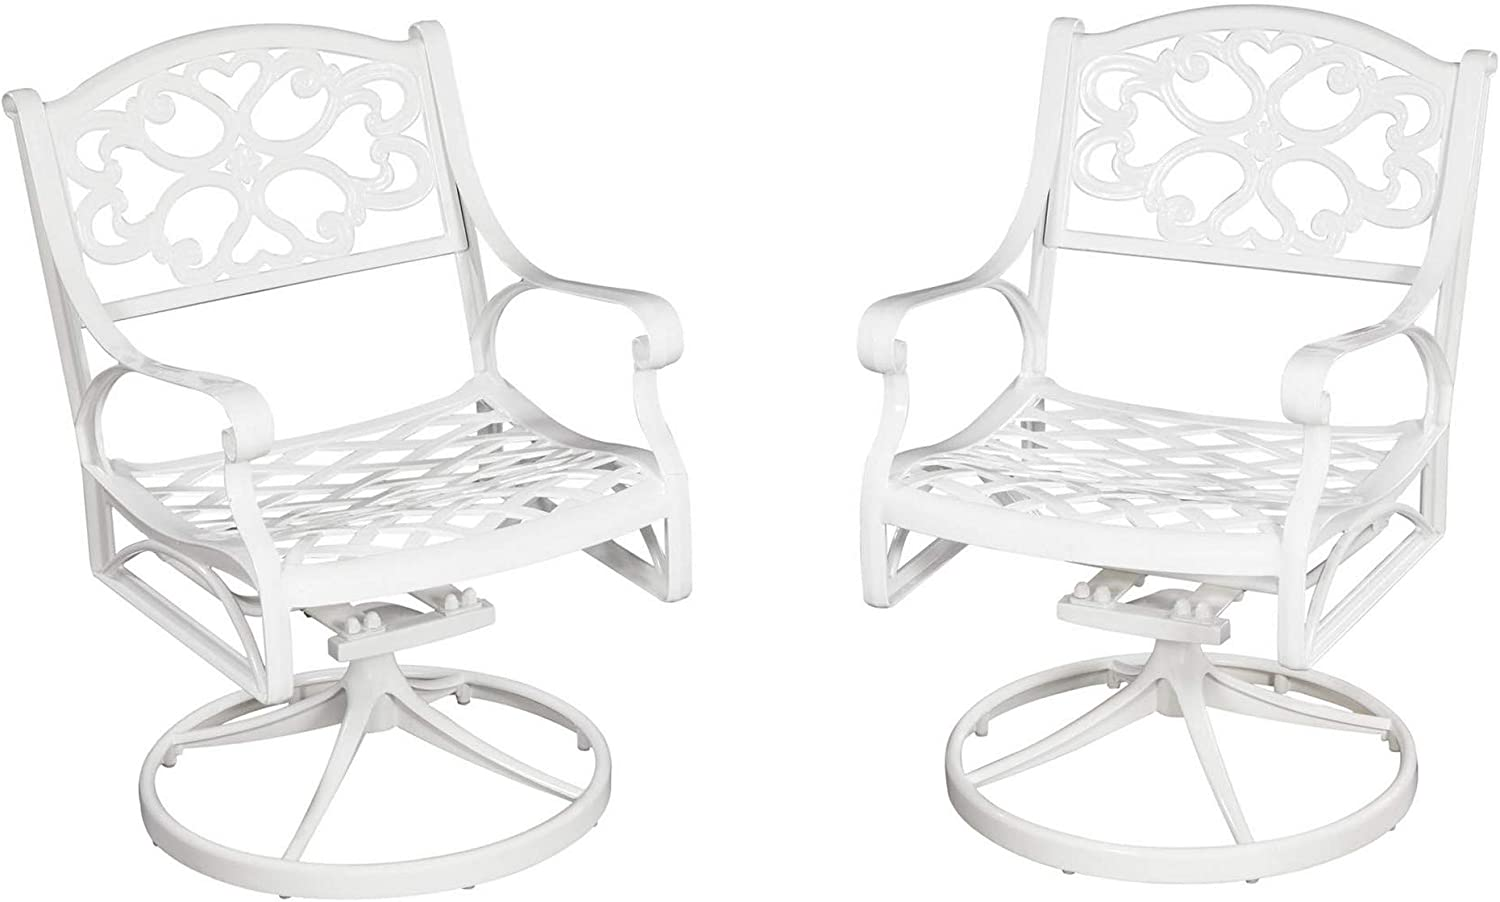 homestyles 6652-53 Outdoor Swivel Rocking Chair, White